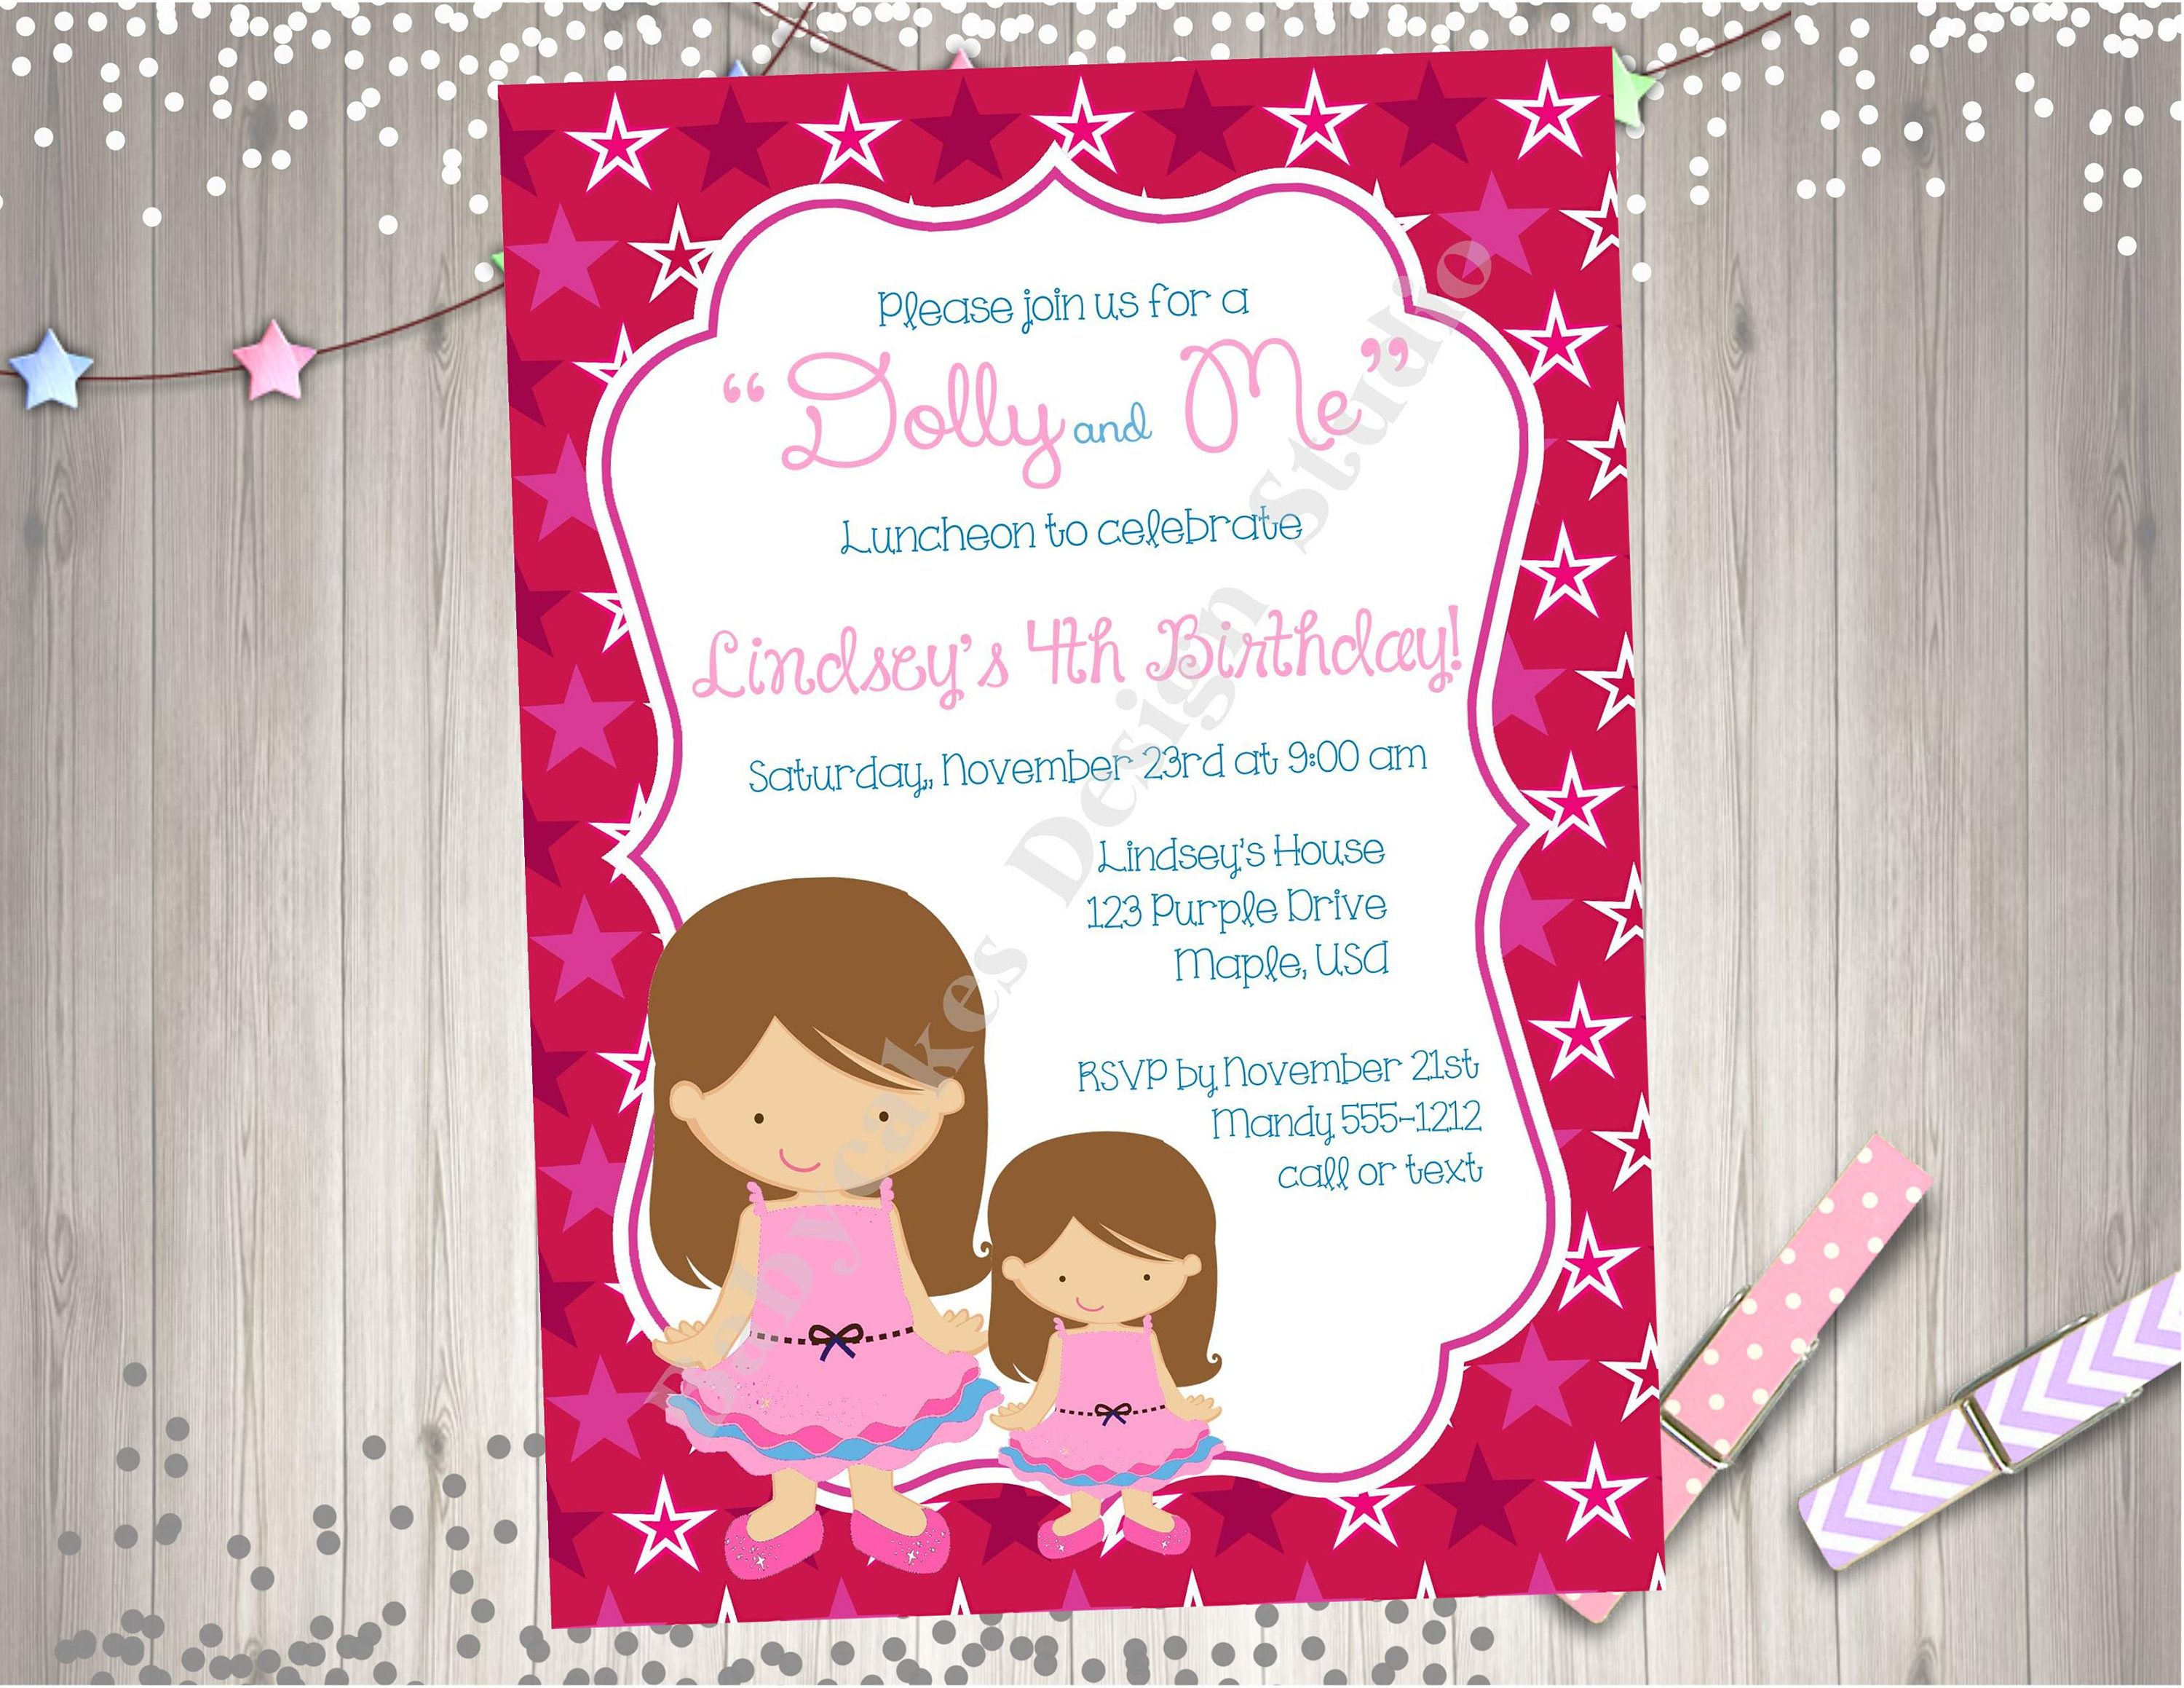 Dolly and me birthday party invitation invite birthday girl dolly dolly and me birthday party invitation invite birthday girl dolly and me tea party printable birthday stopboris